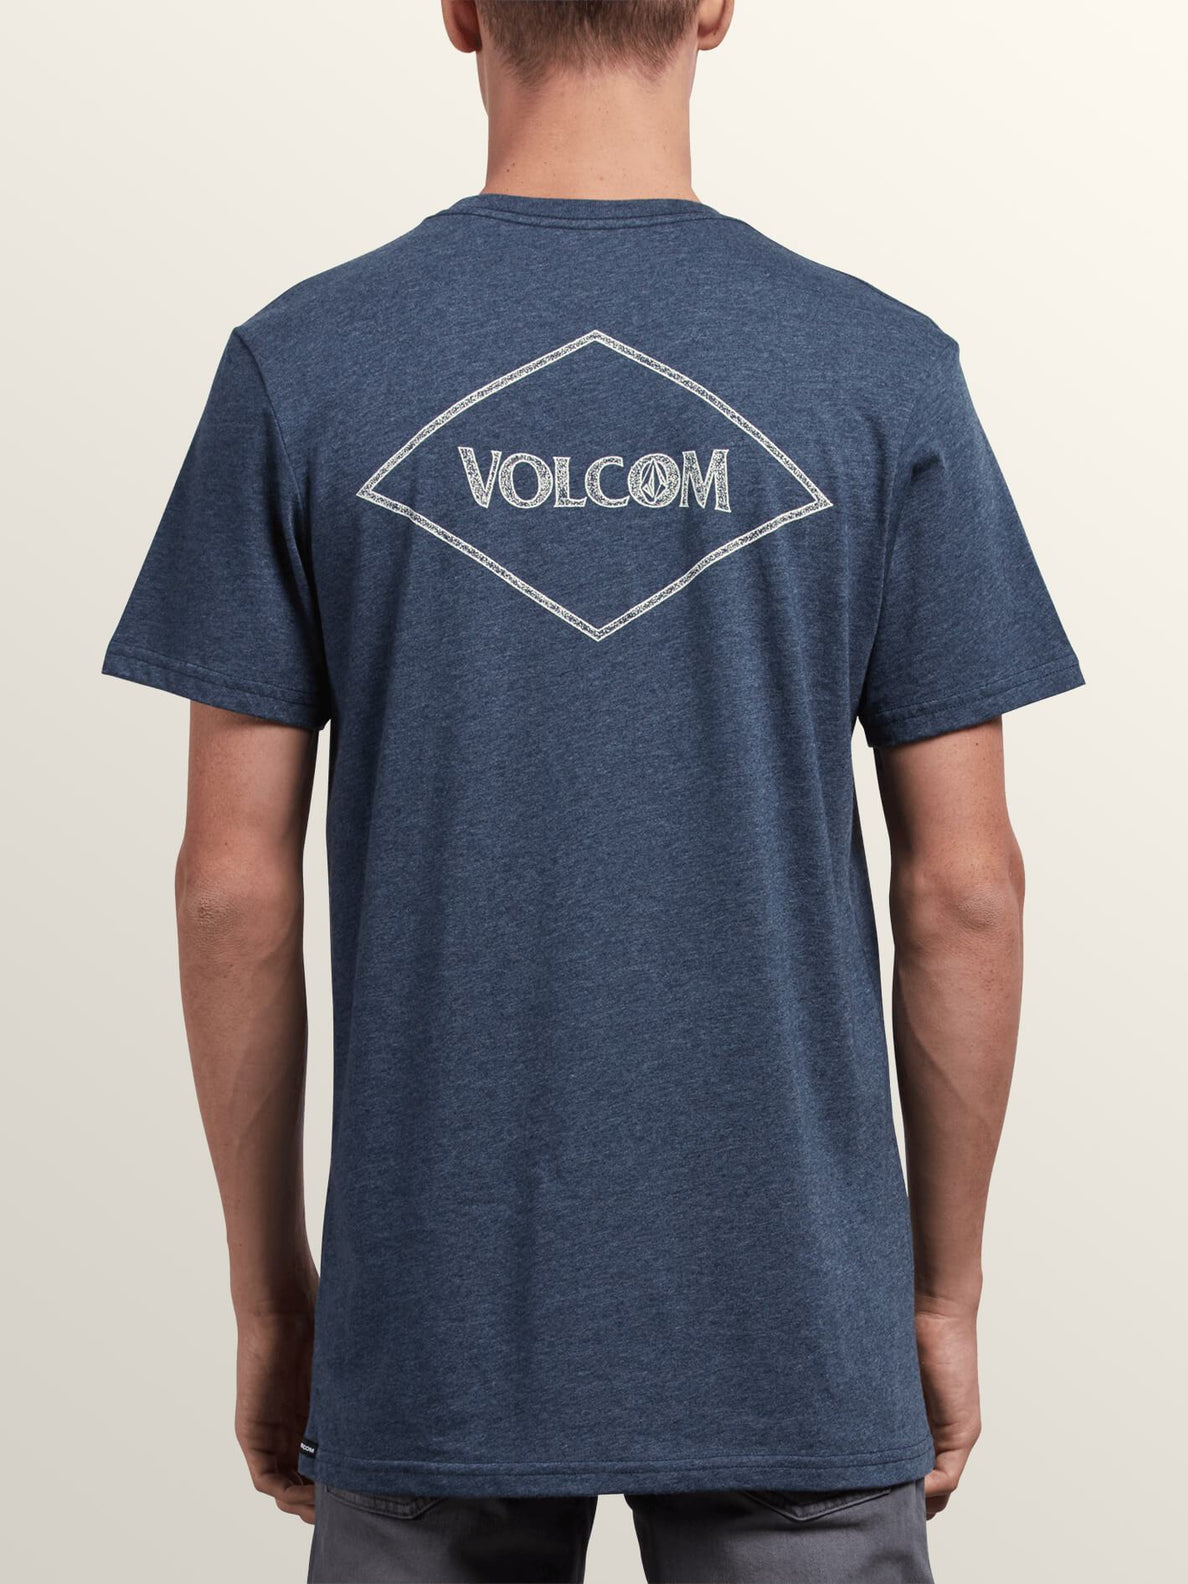 Center Short Sleeve Pocket Tee In Navy, Back View